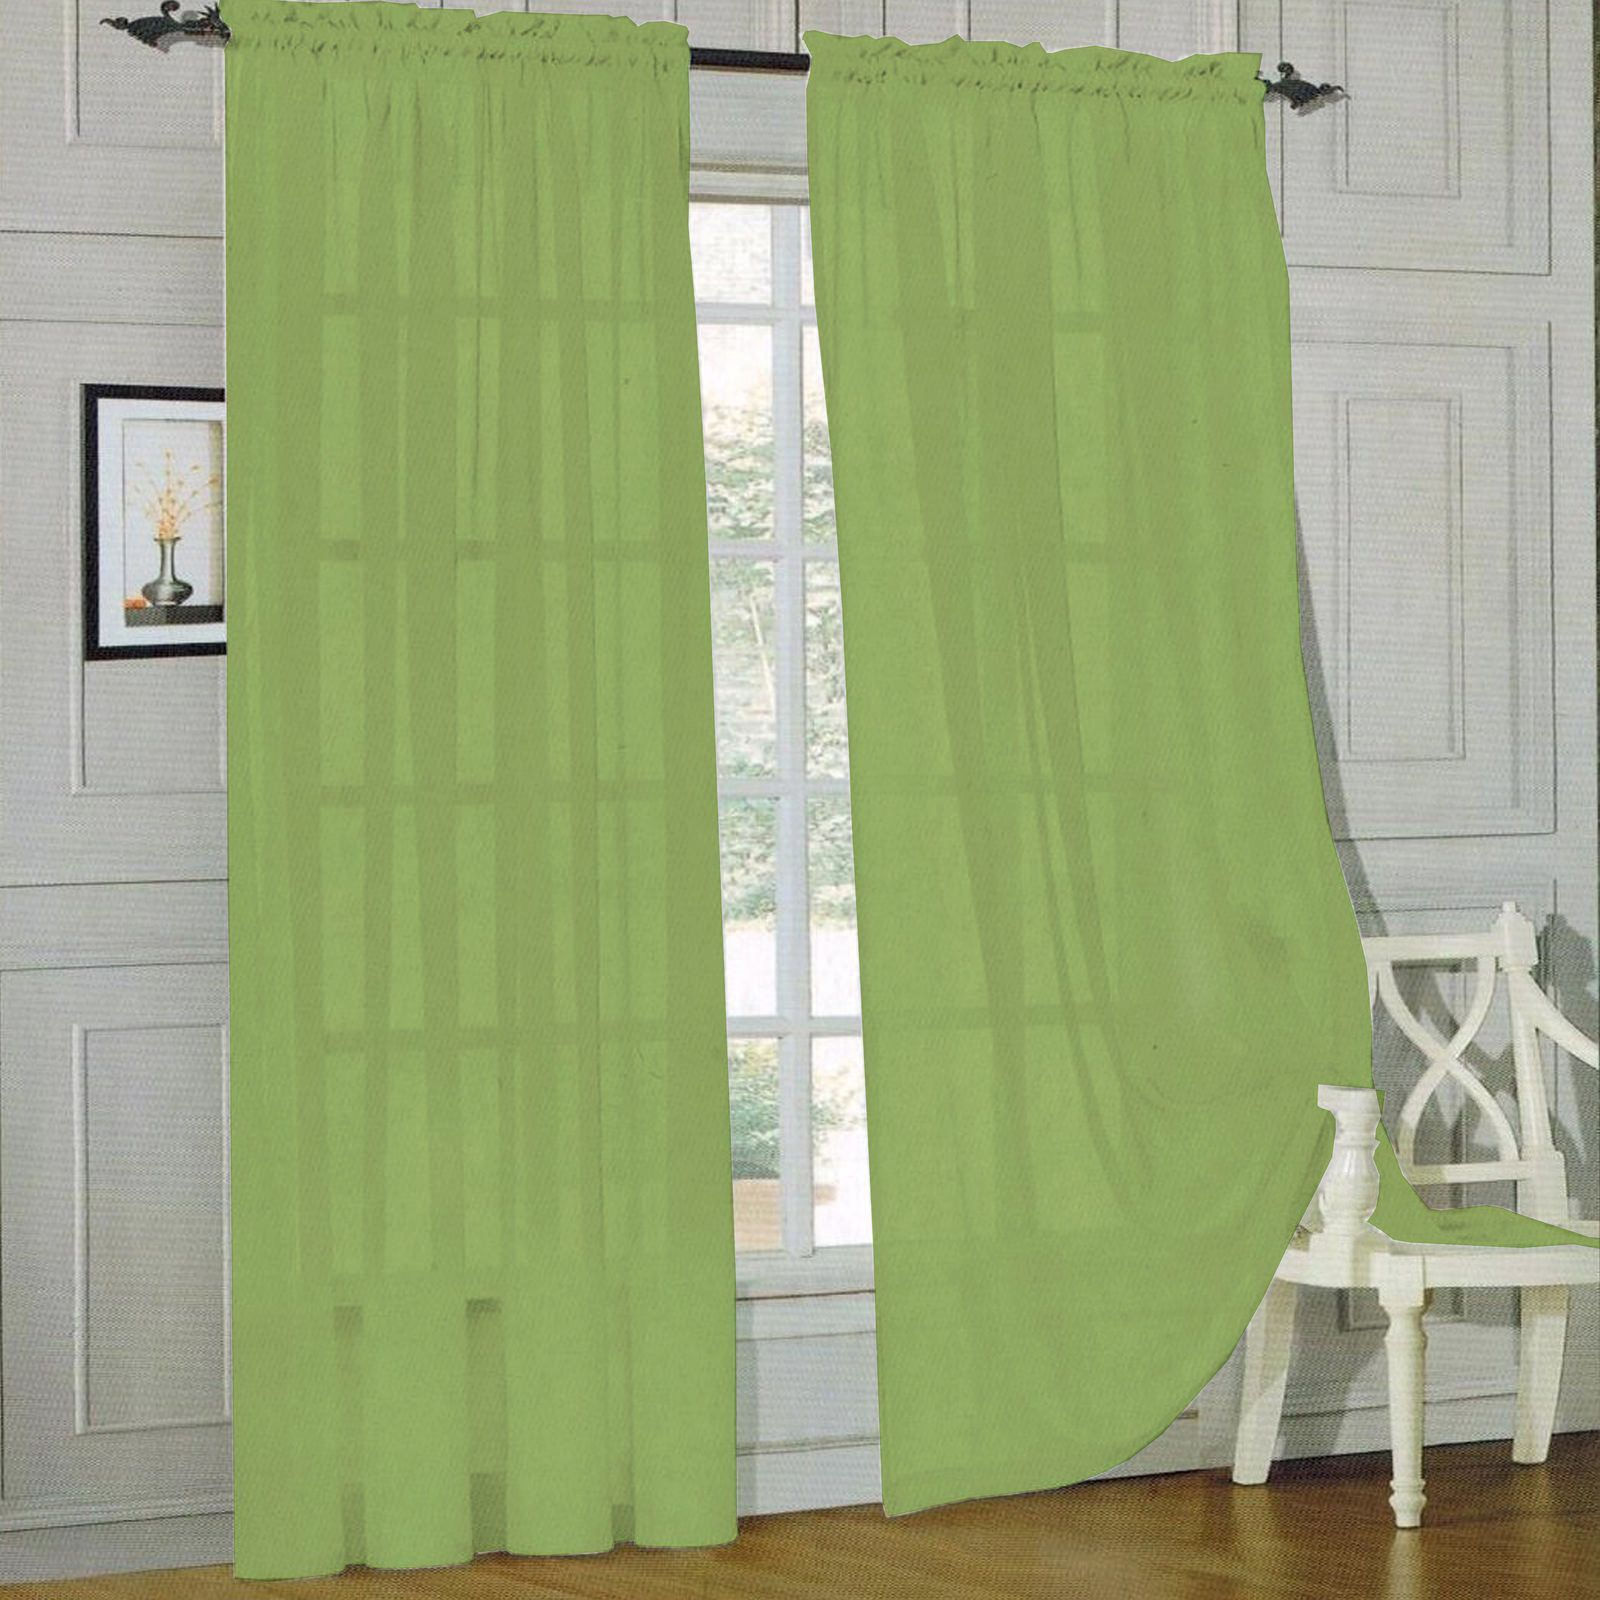 Sheer Voile Curtain Panels Panel Curtains Curtains Drapes Curtains